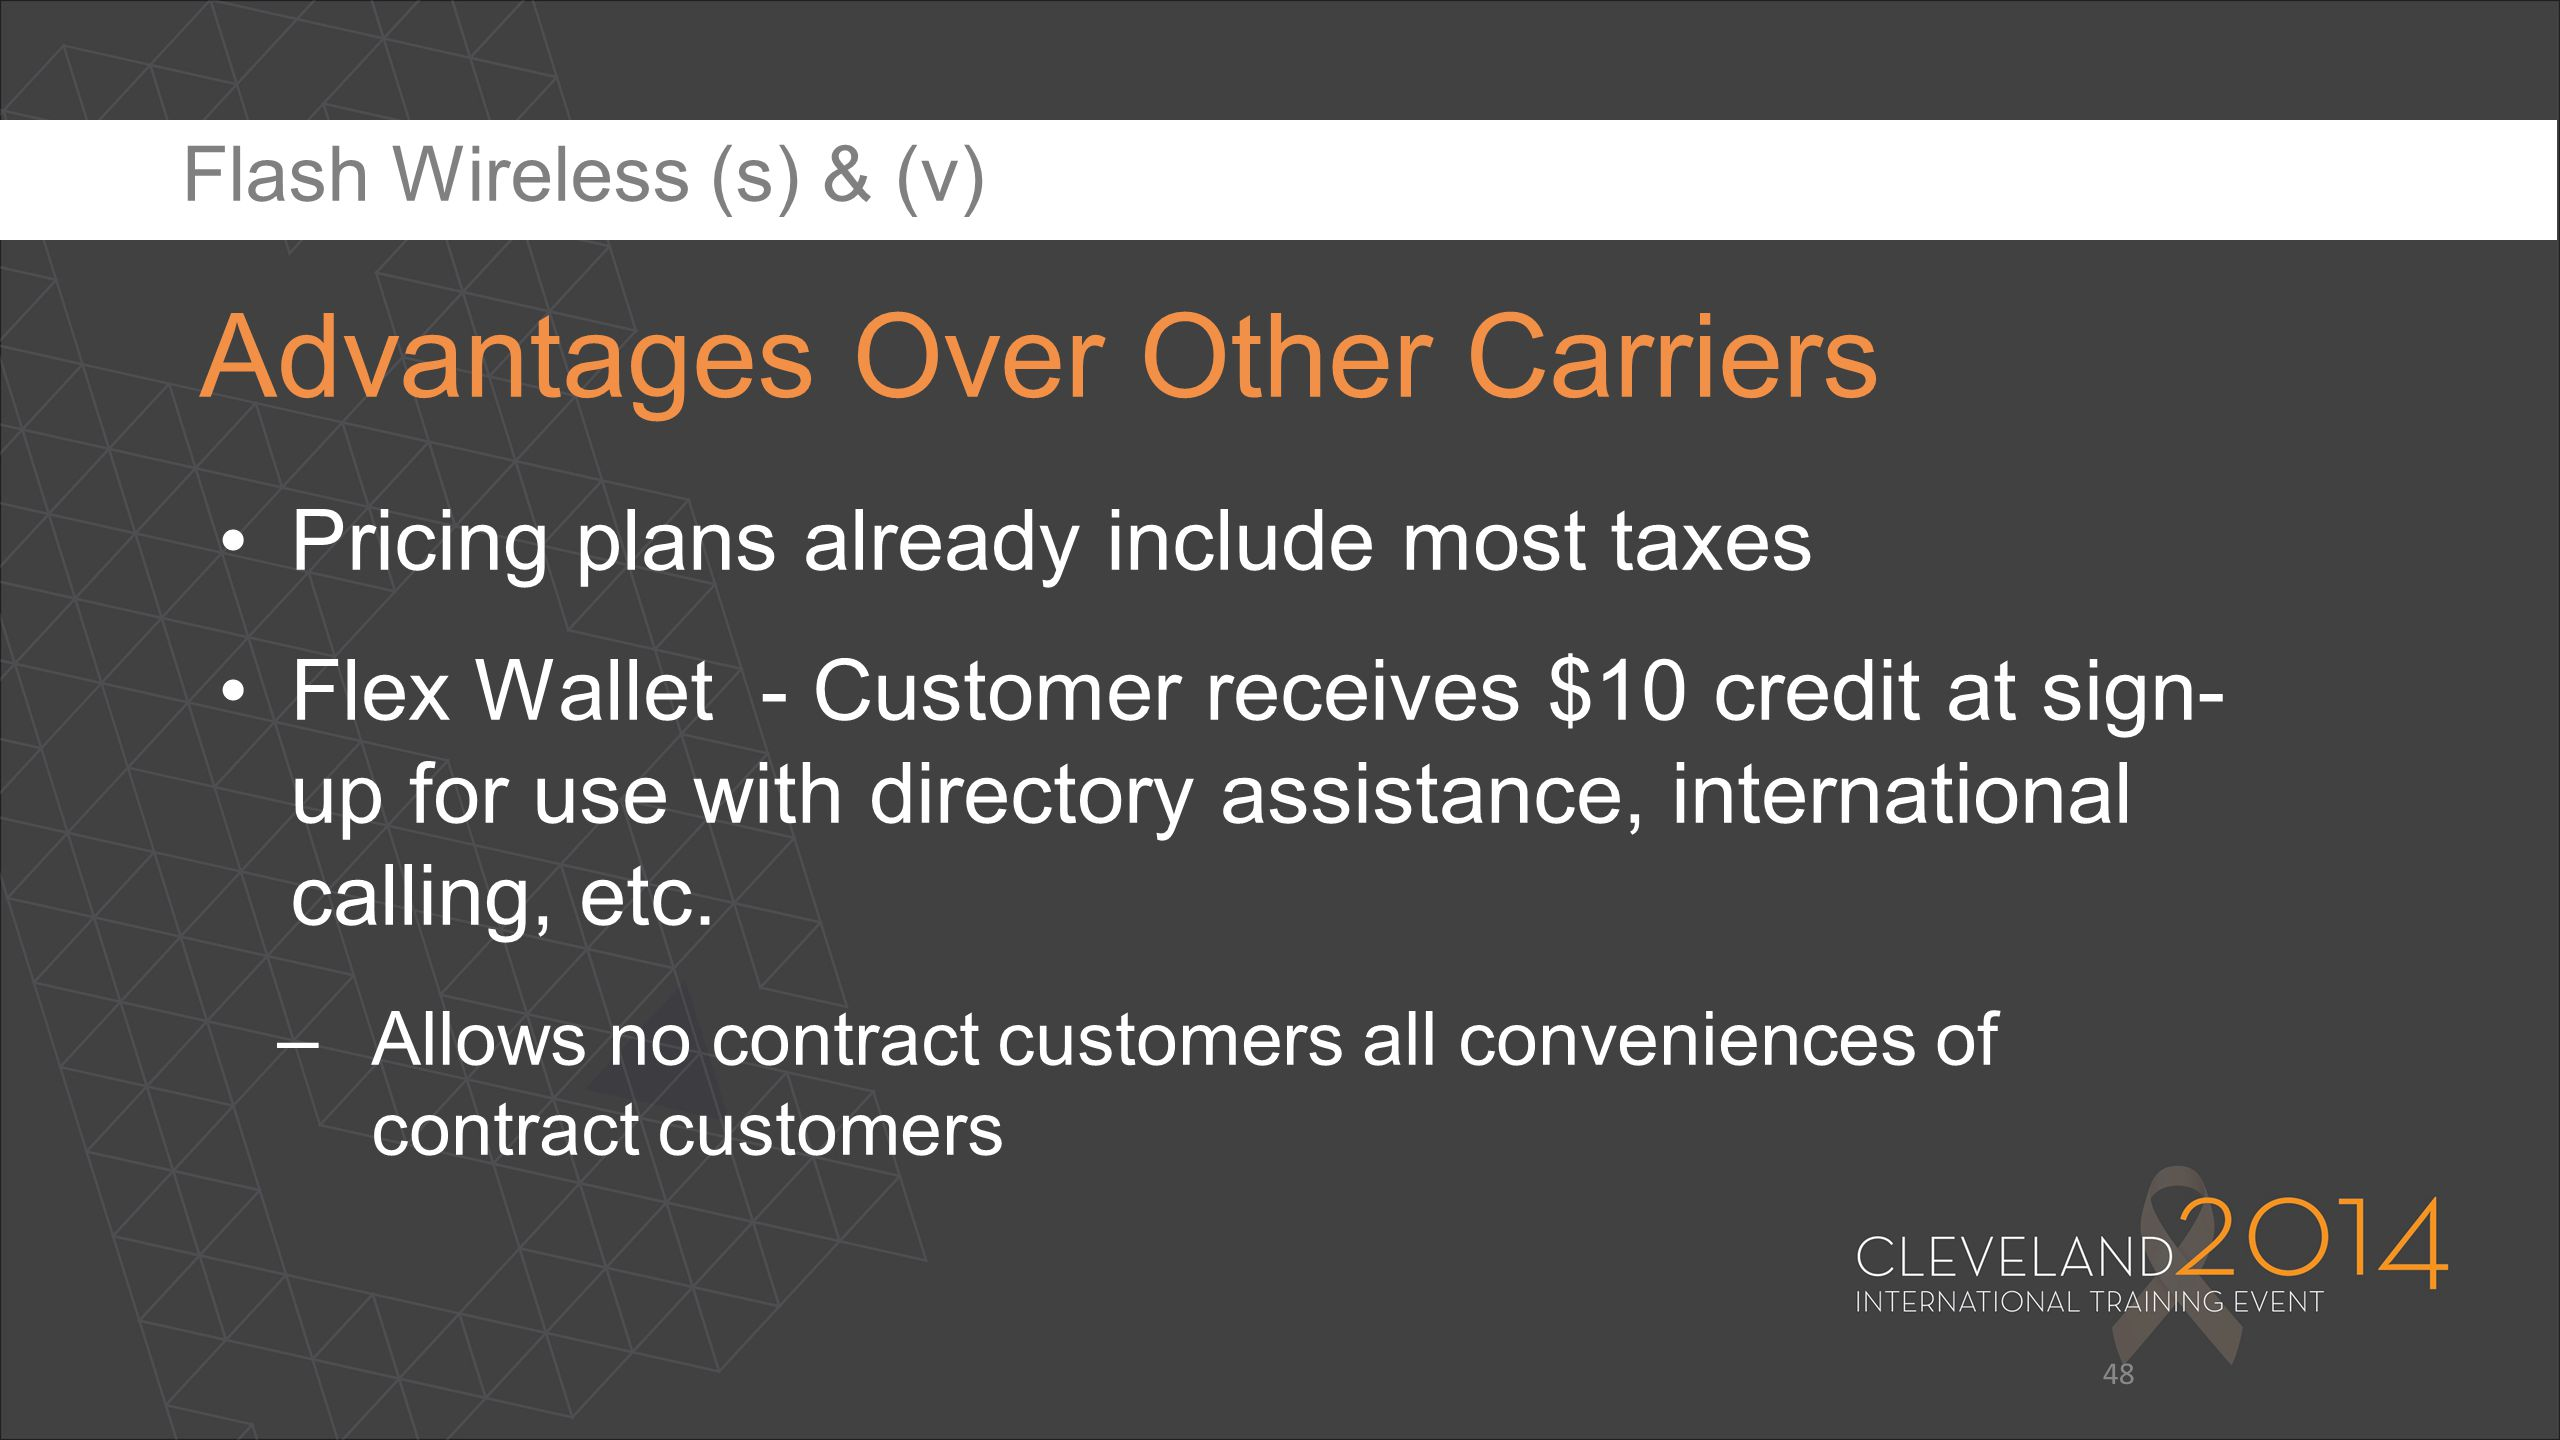 Advantages Over Other Carriers